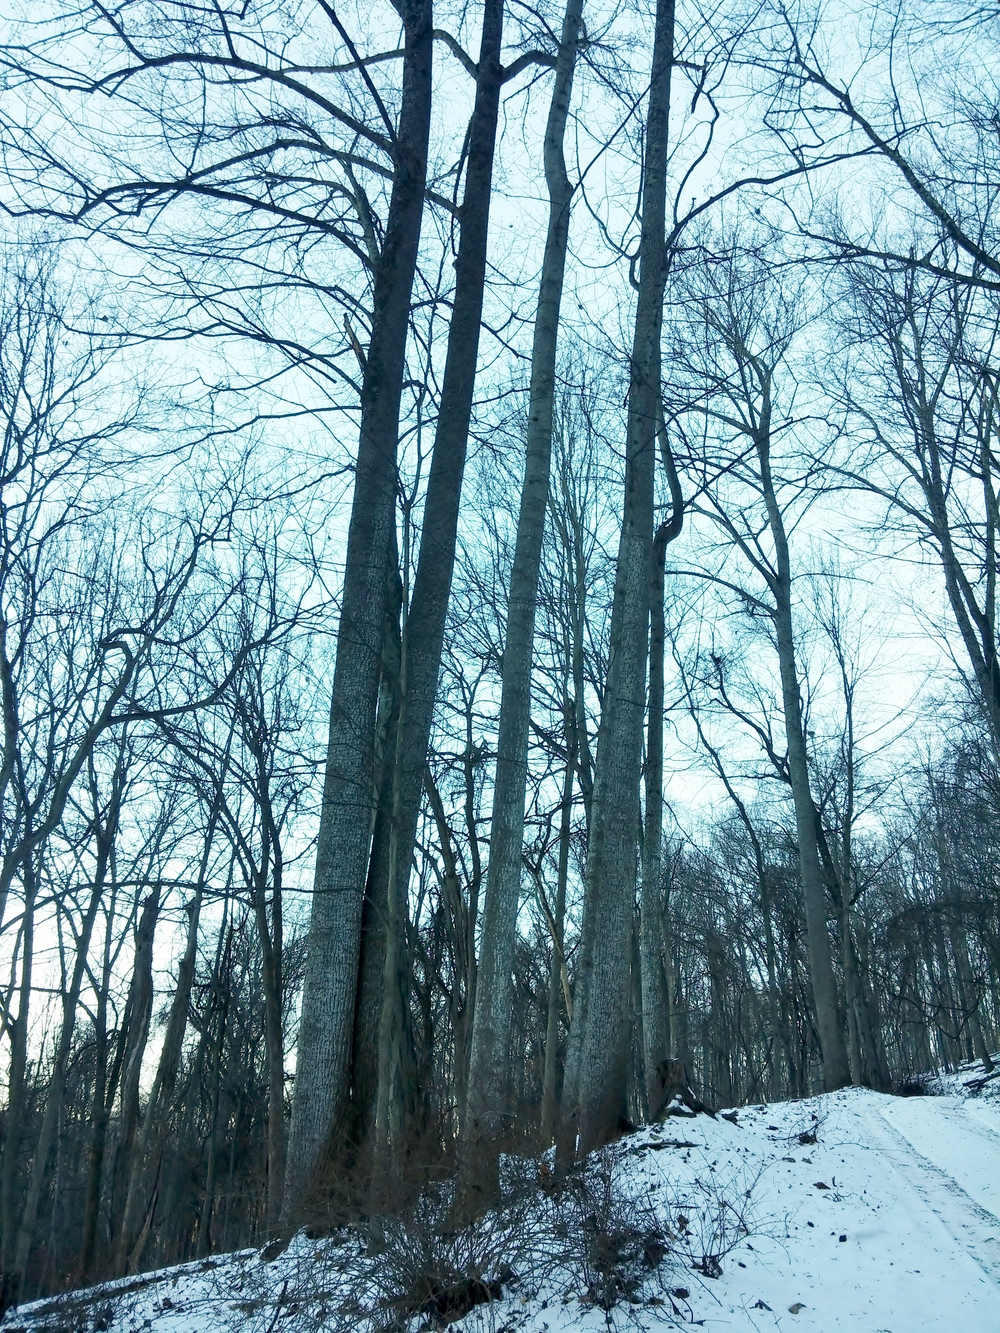 photo essay a walk in the winter woods potomac conservancy bark twigs and overall shape provide clues to the type of tree you are